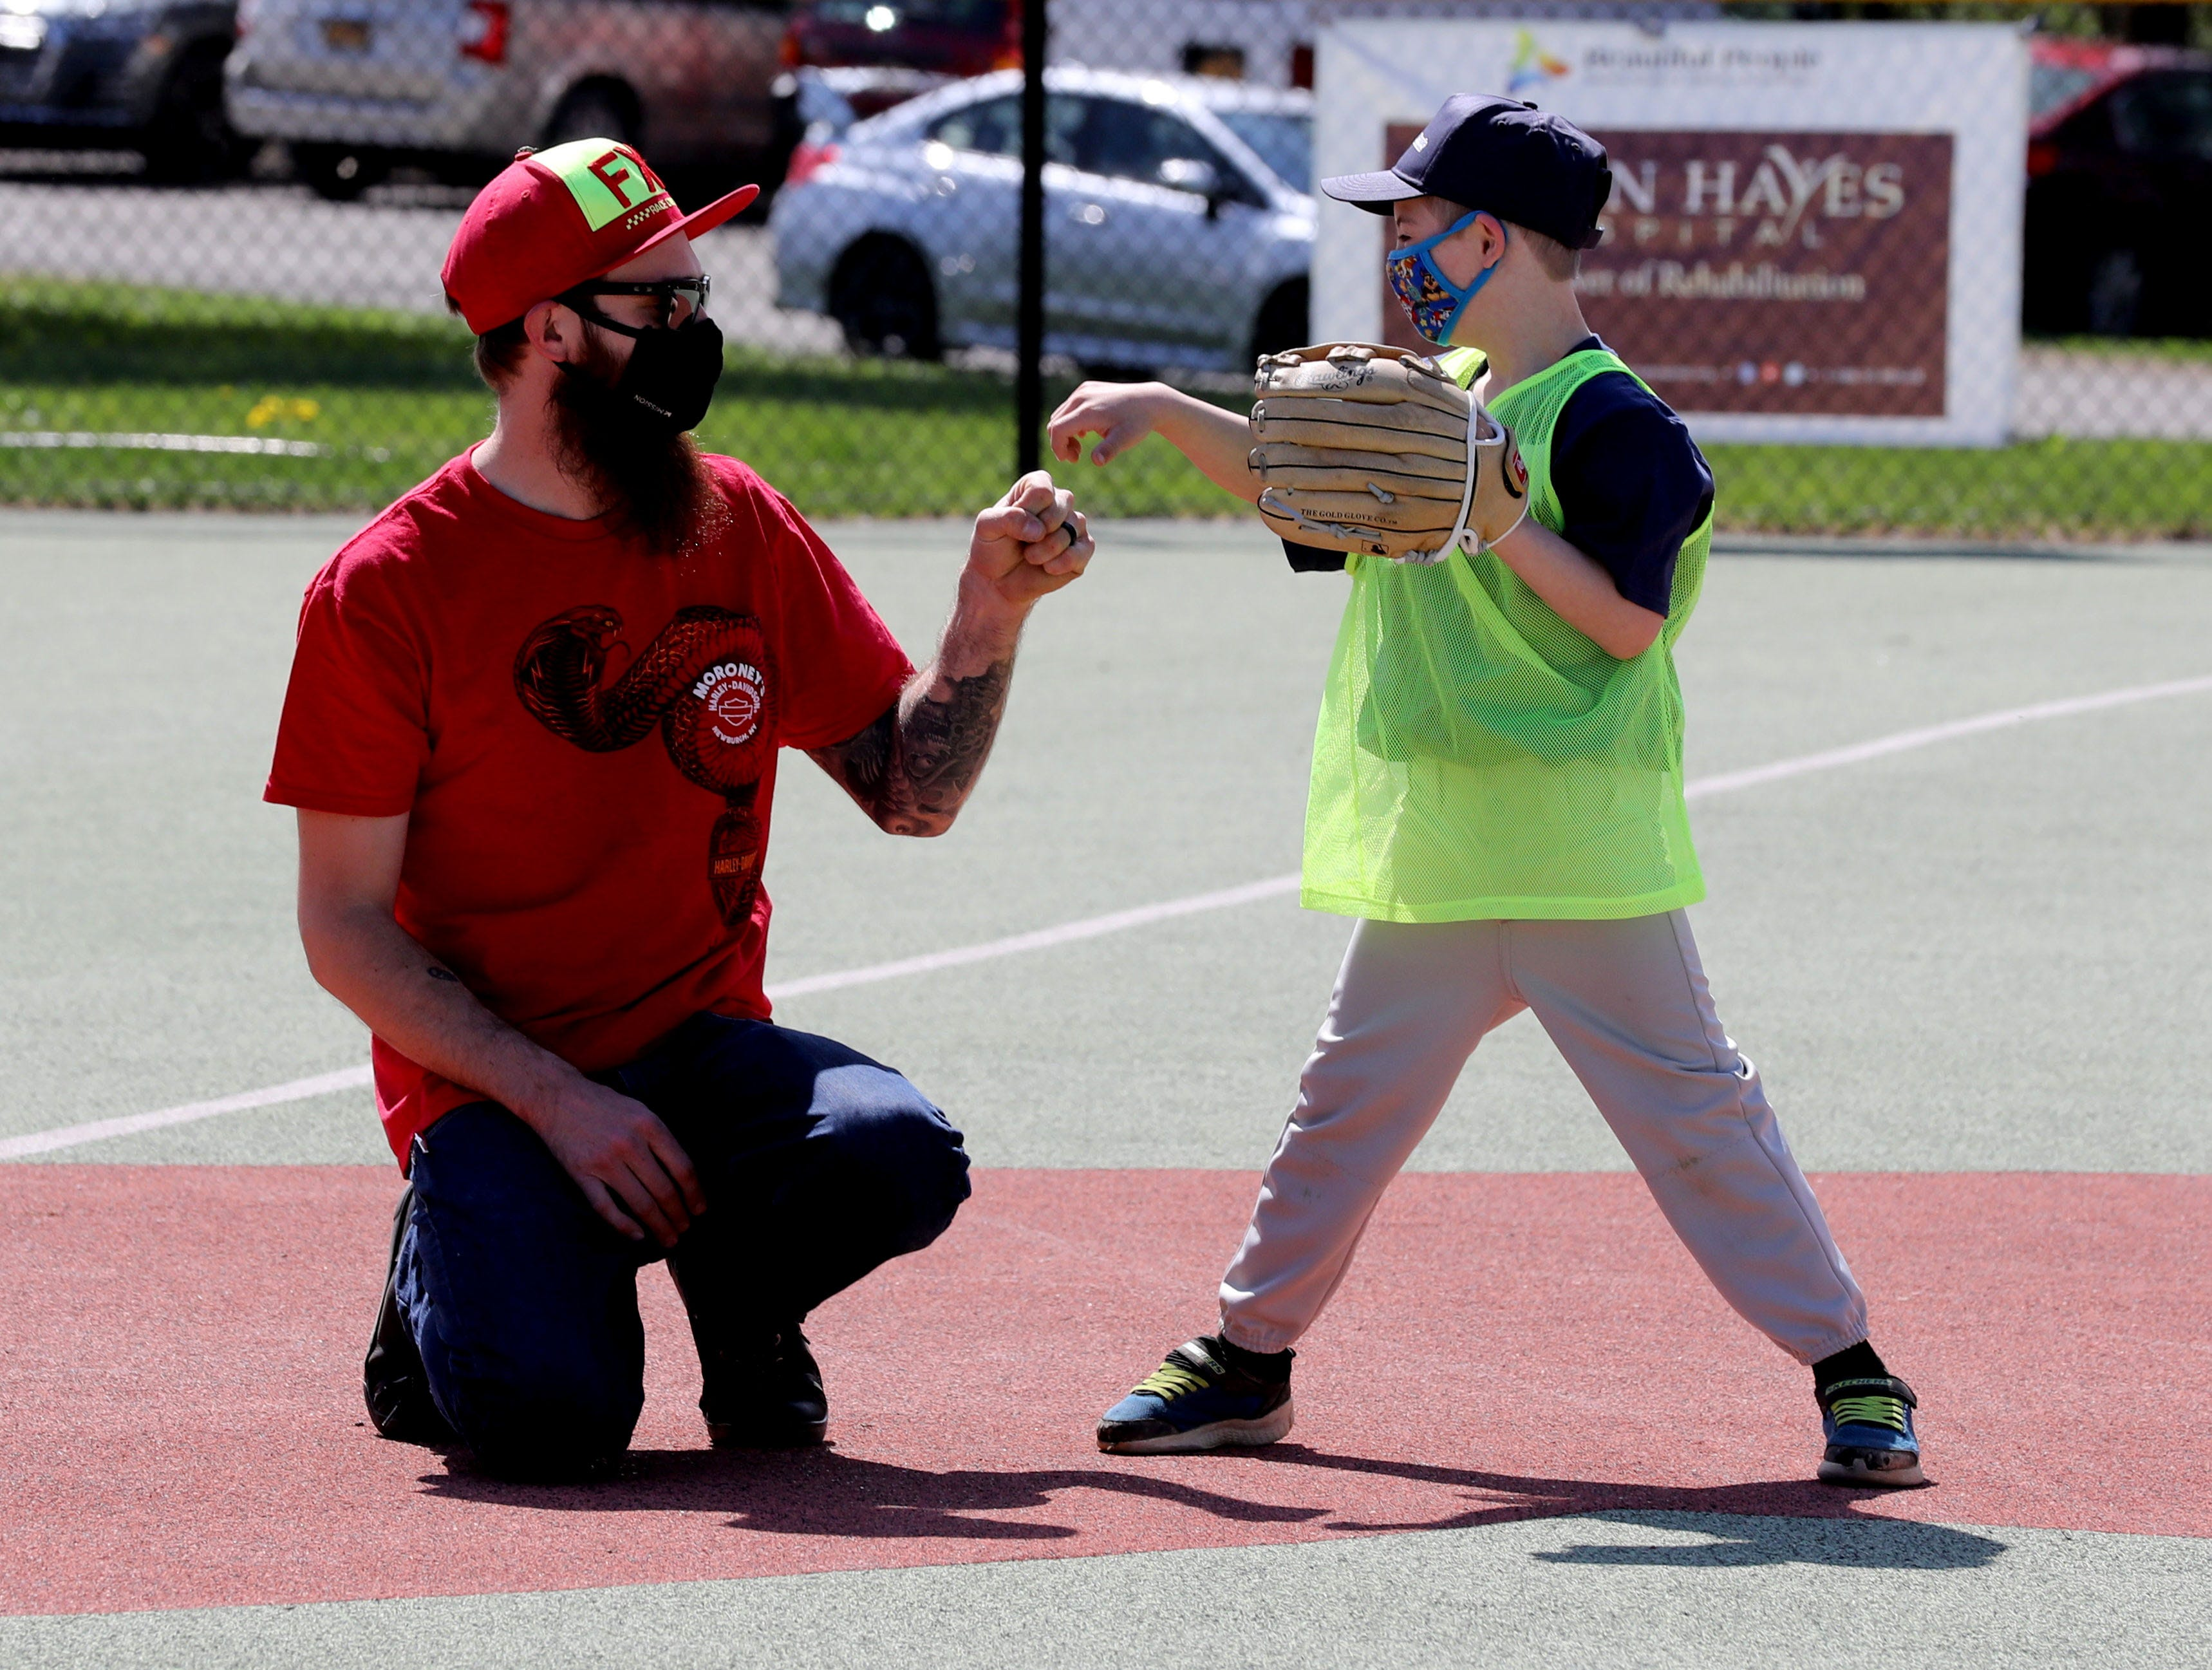 Michael Delaney, 8, of Warwick, N.Y. fist bumps his father Mike as he plays baseball during opening day for Beautiful People Baseball in Warwick, N.Y. May 2, 2021. The baseball program is one of the sports offered by Beautiful People, which provided adaptive sports for children with disabilities.